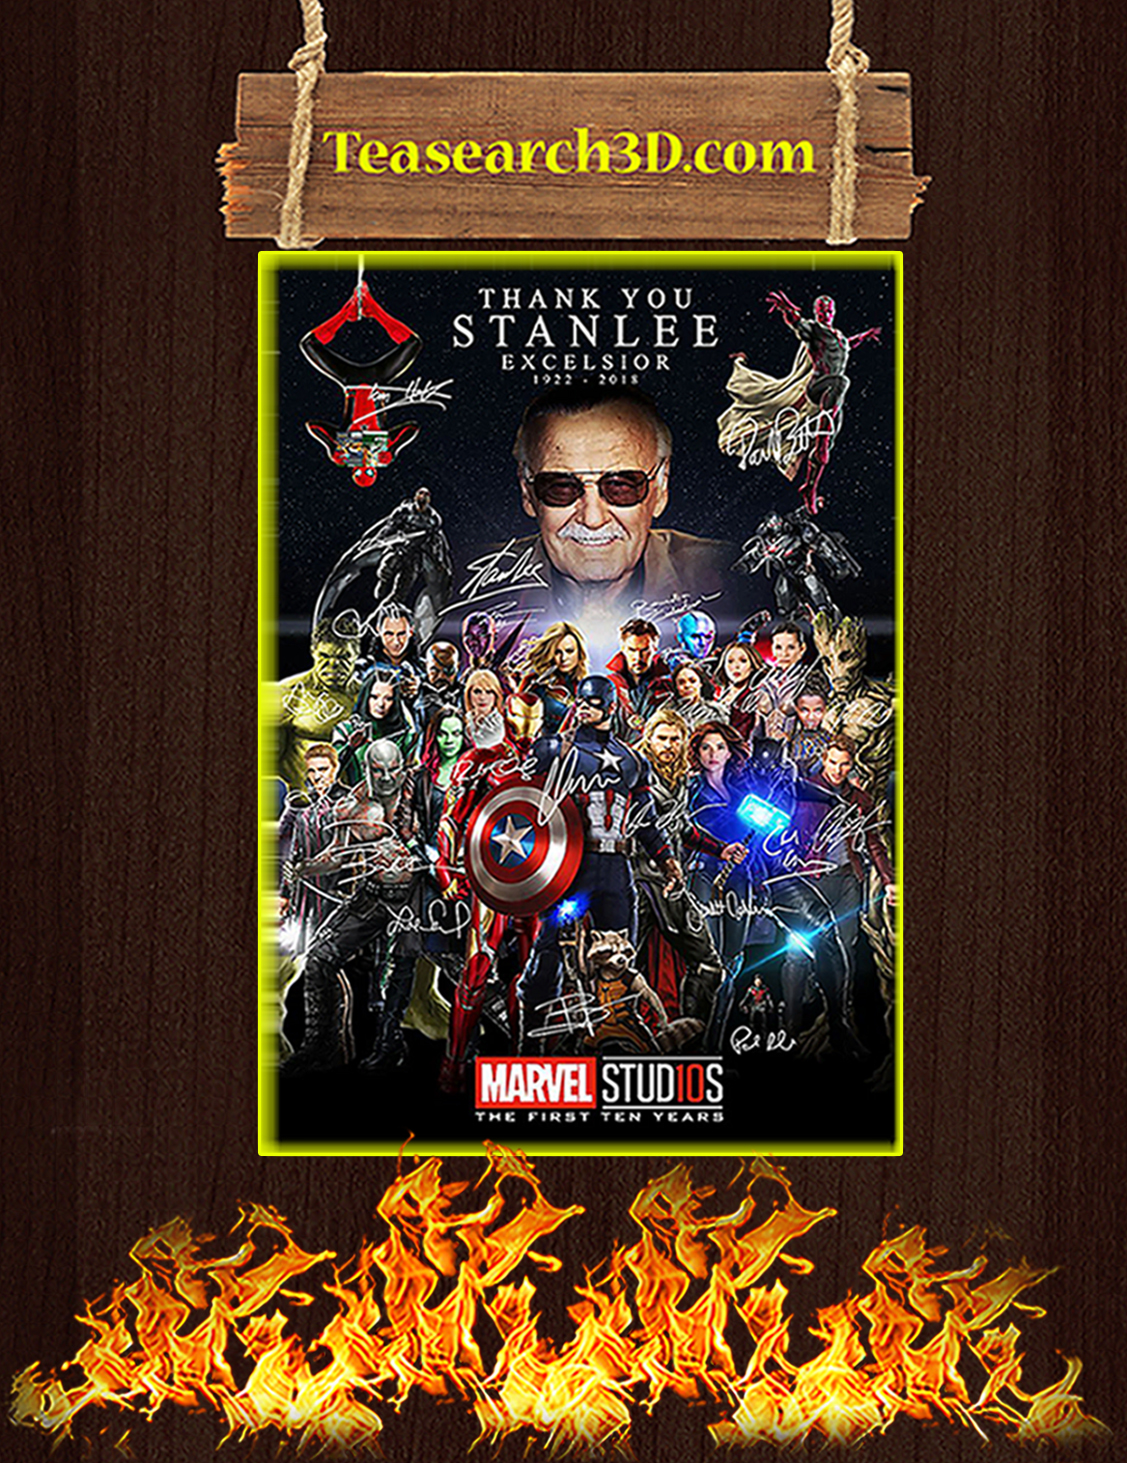 Thank you stanlee excelsior signature poster A3